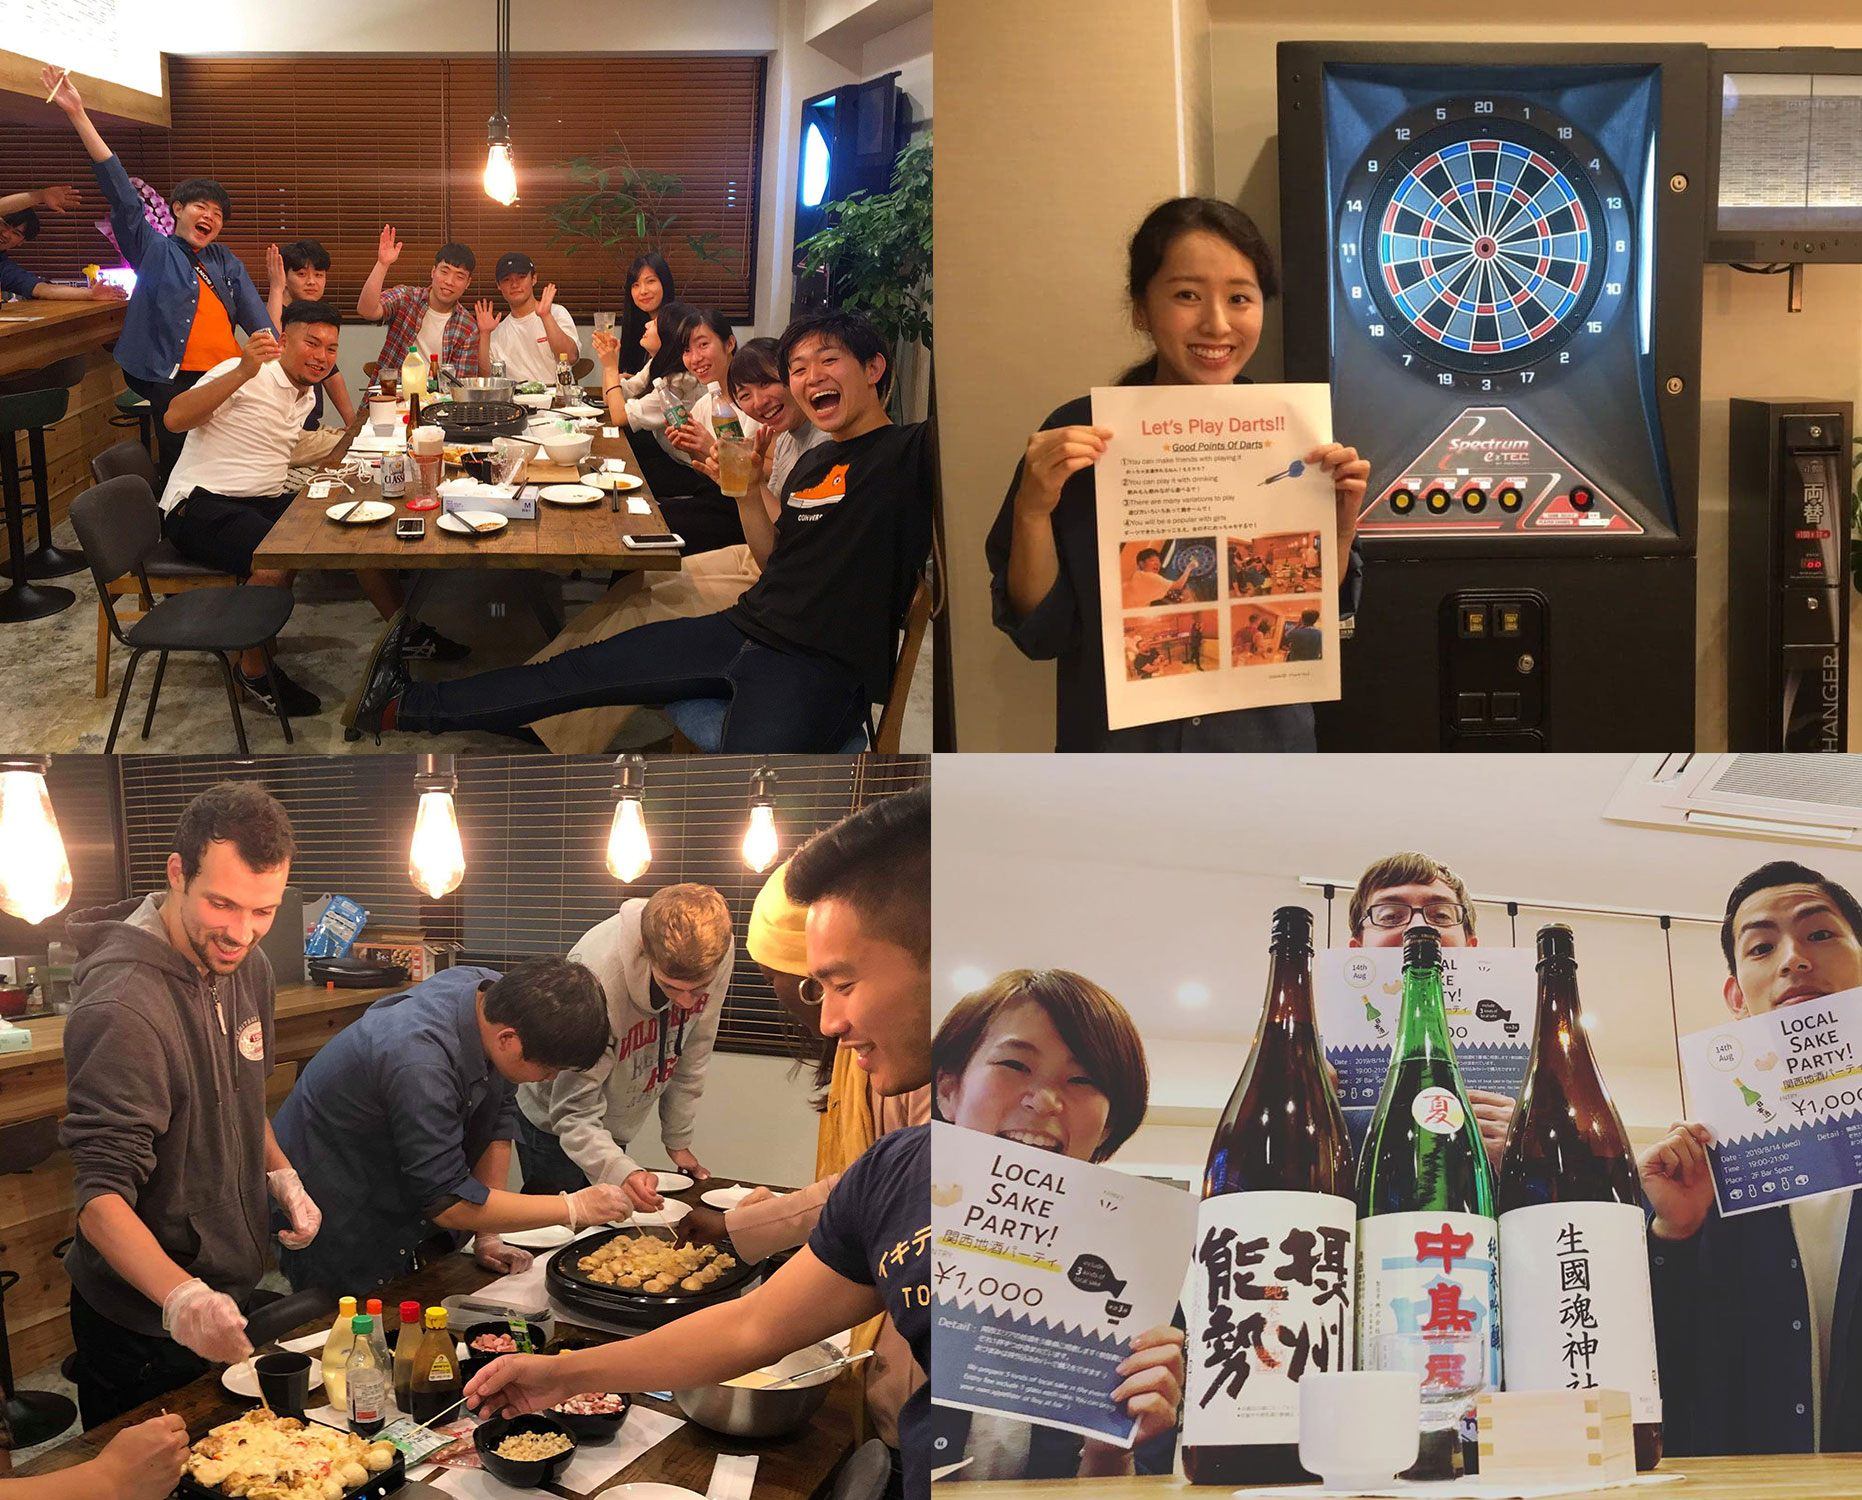 There are also lots of events to participate in! Have fun together playing darts, drinking sake, making takoyaki, or with original seasonal events!